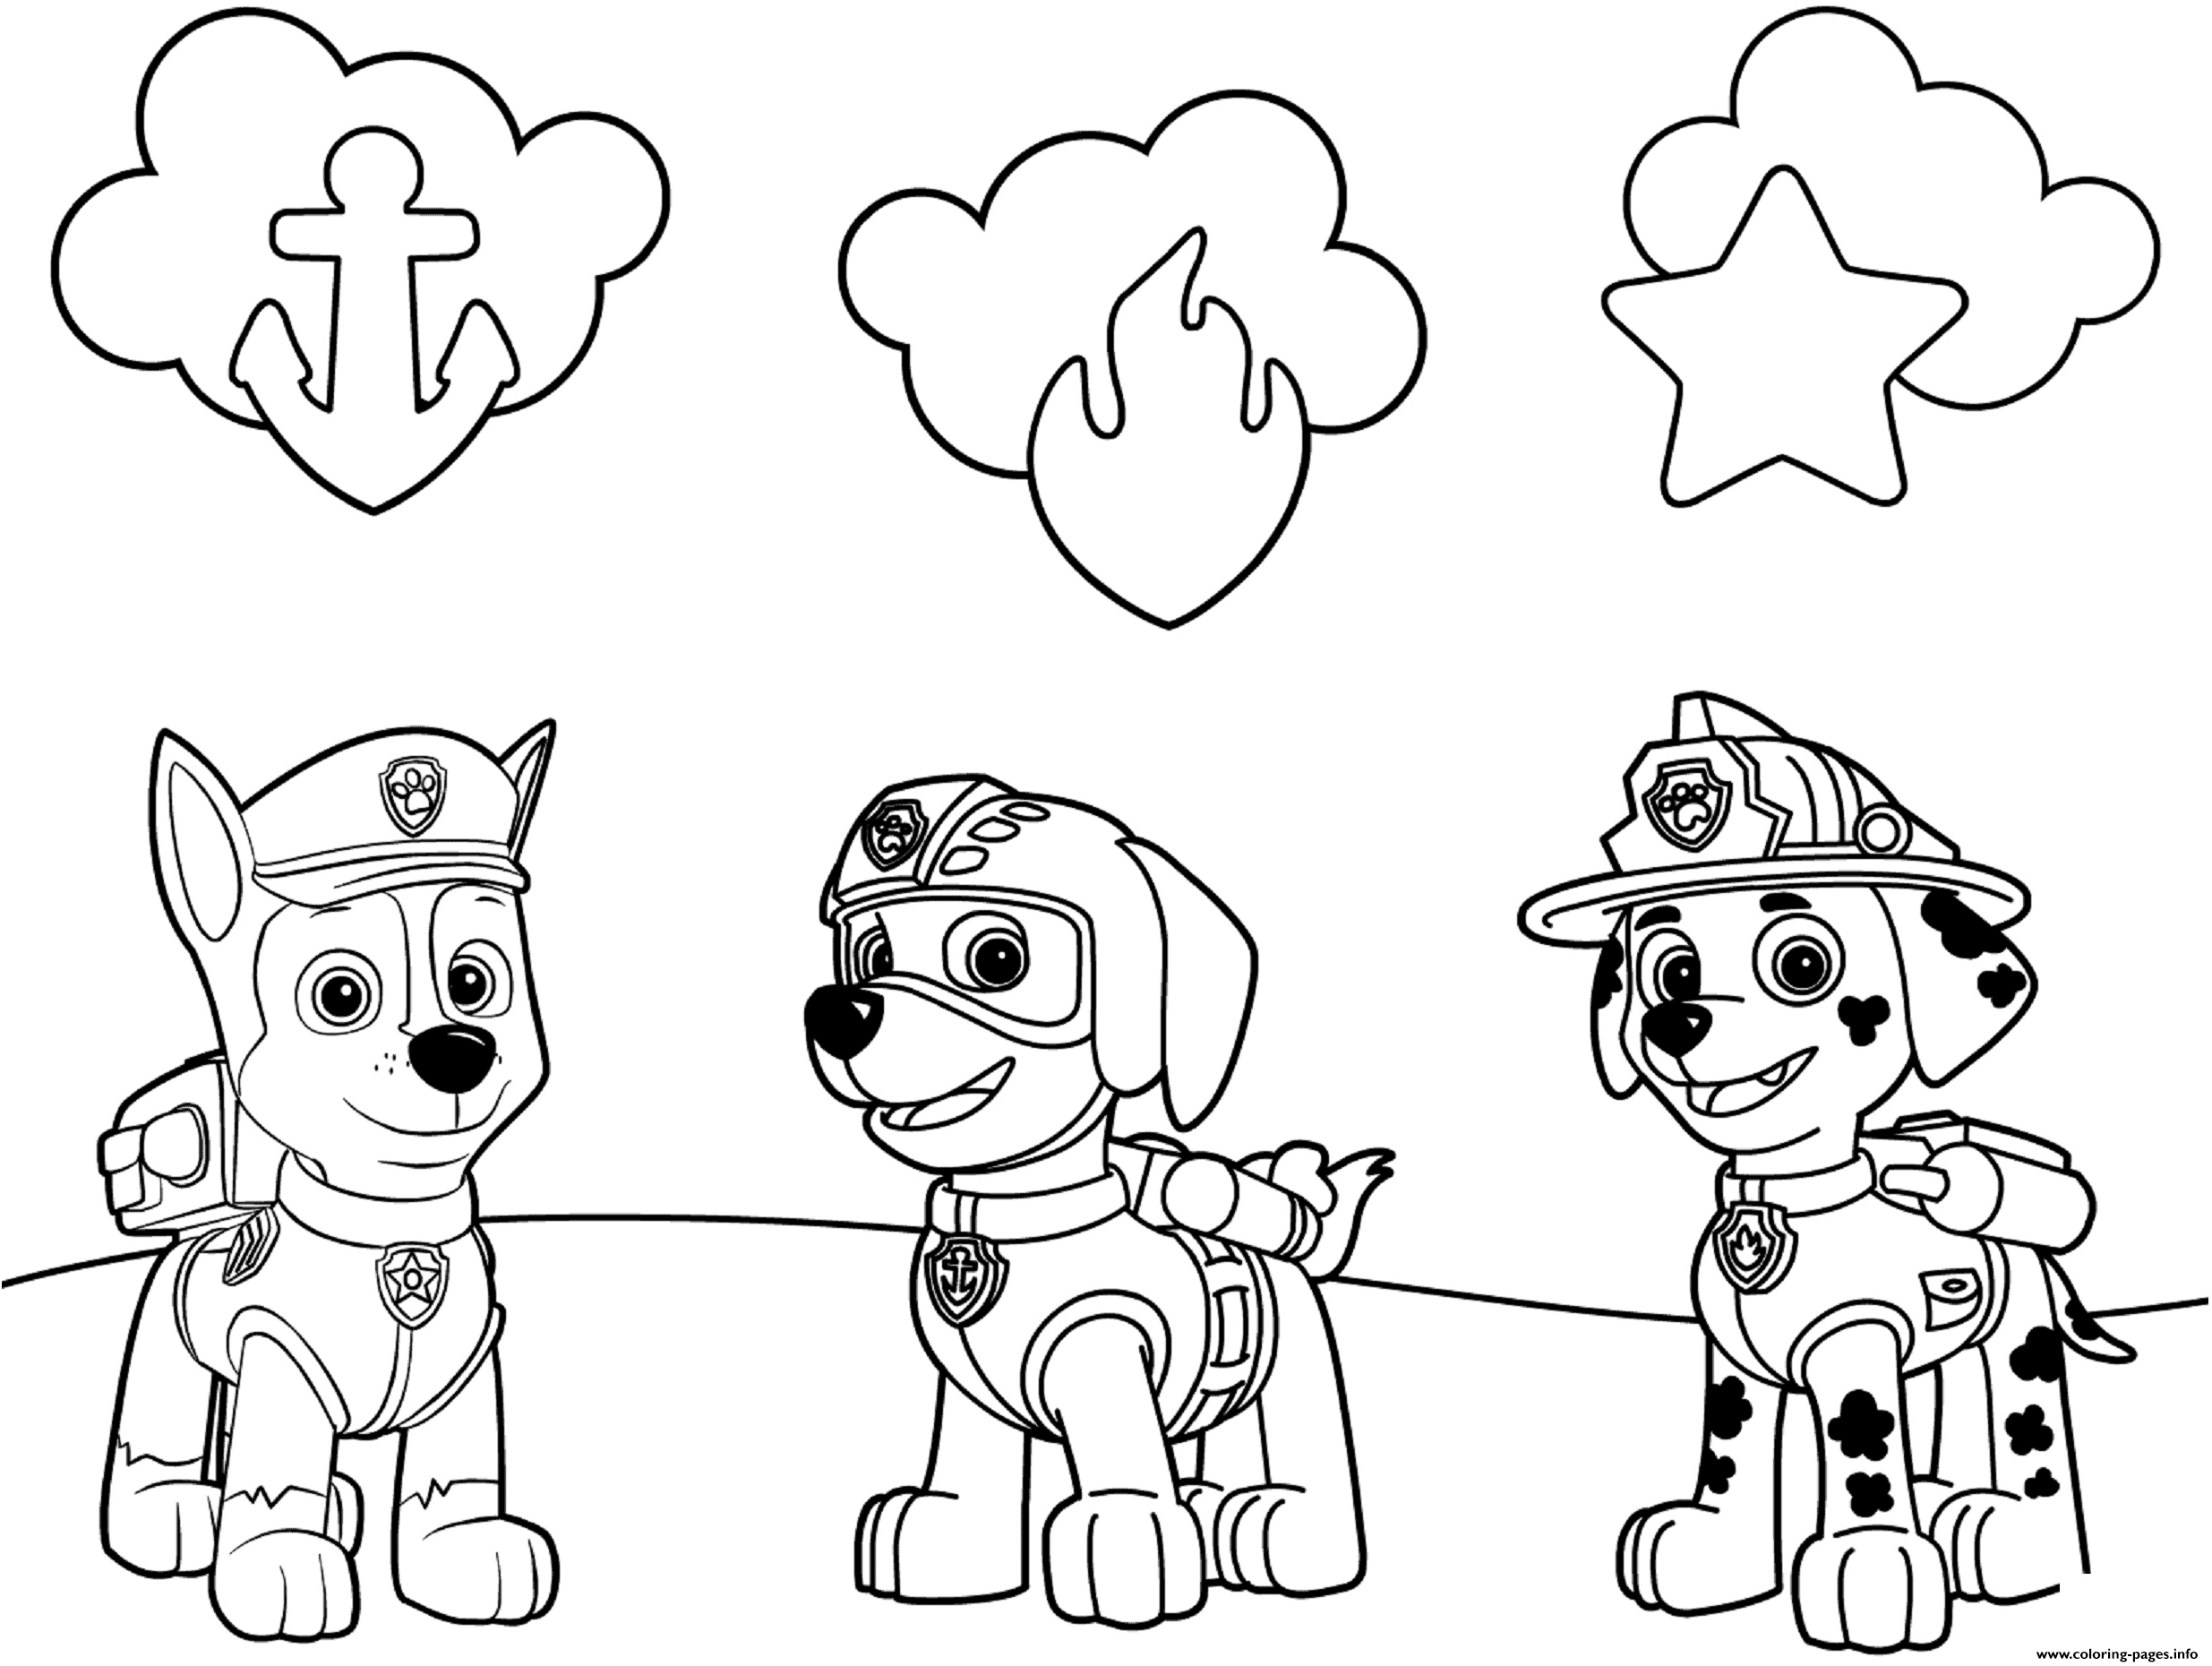 Marshall Paw Patrol Coloring Page Paw Patrol Coloring Pages Info Has Over  65 Awesome Paw Including - birijus.com